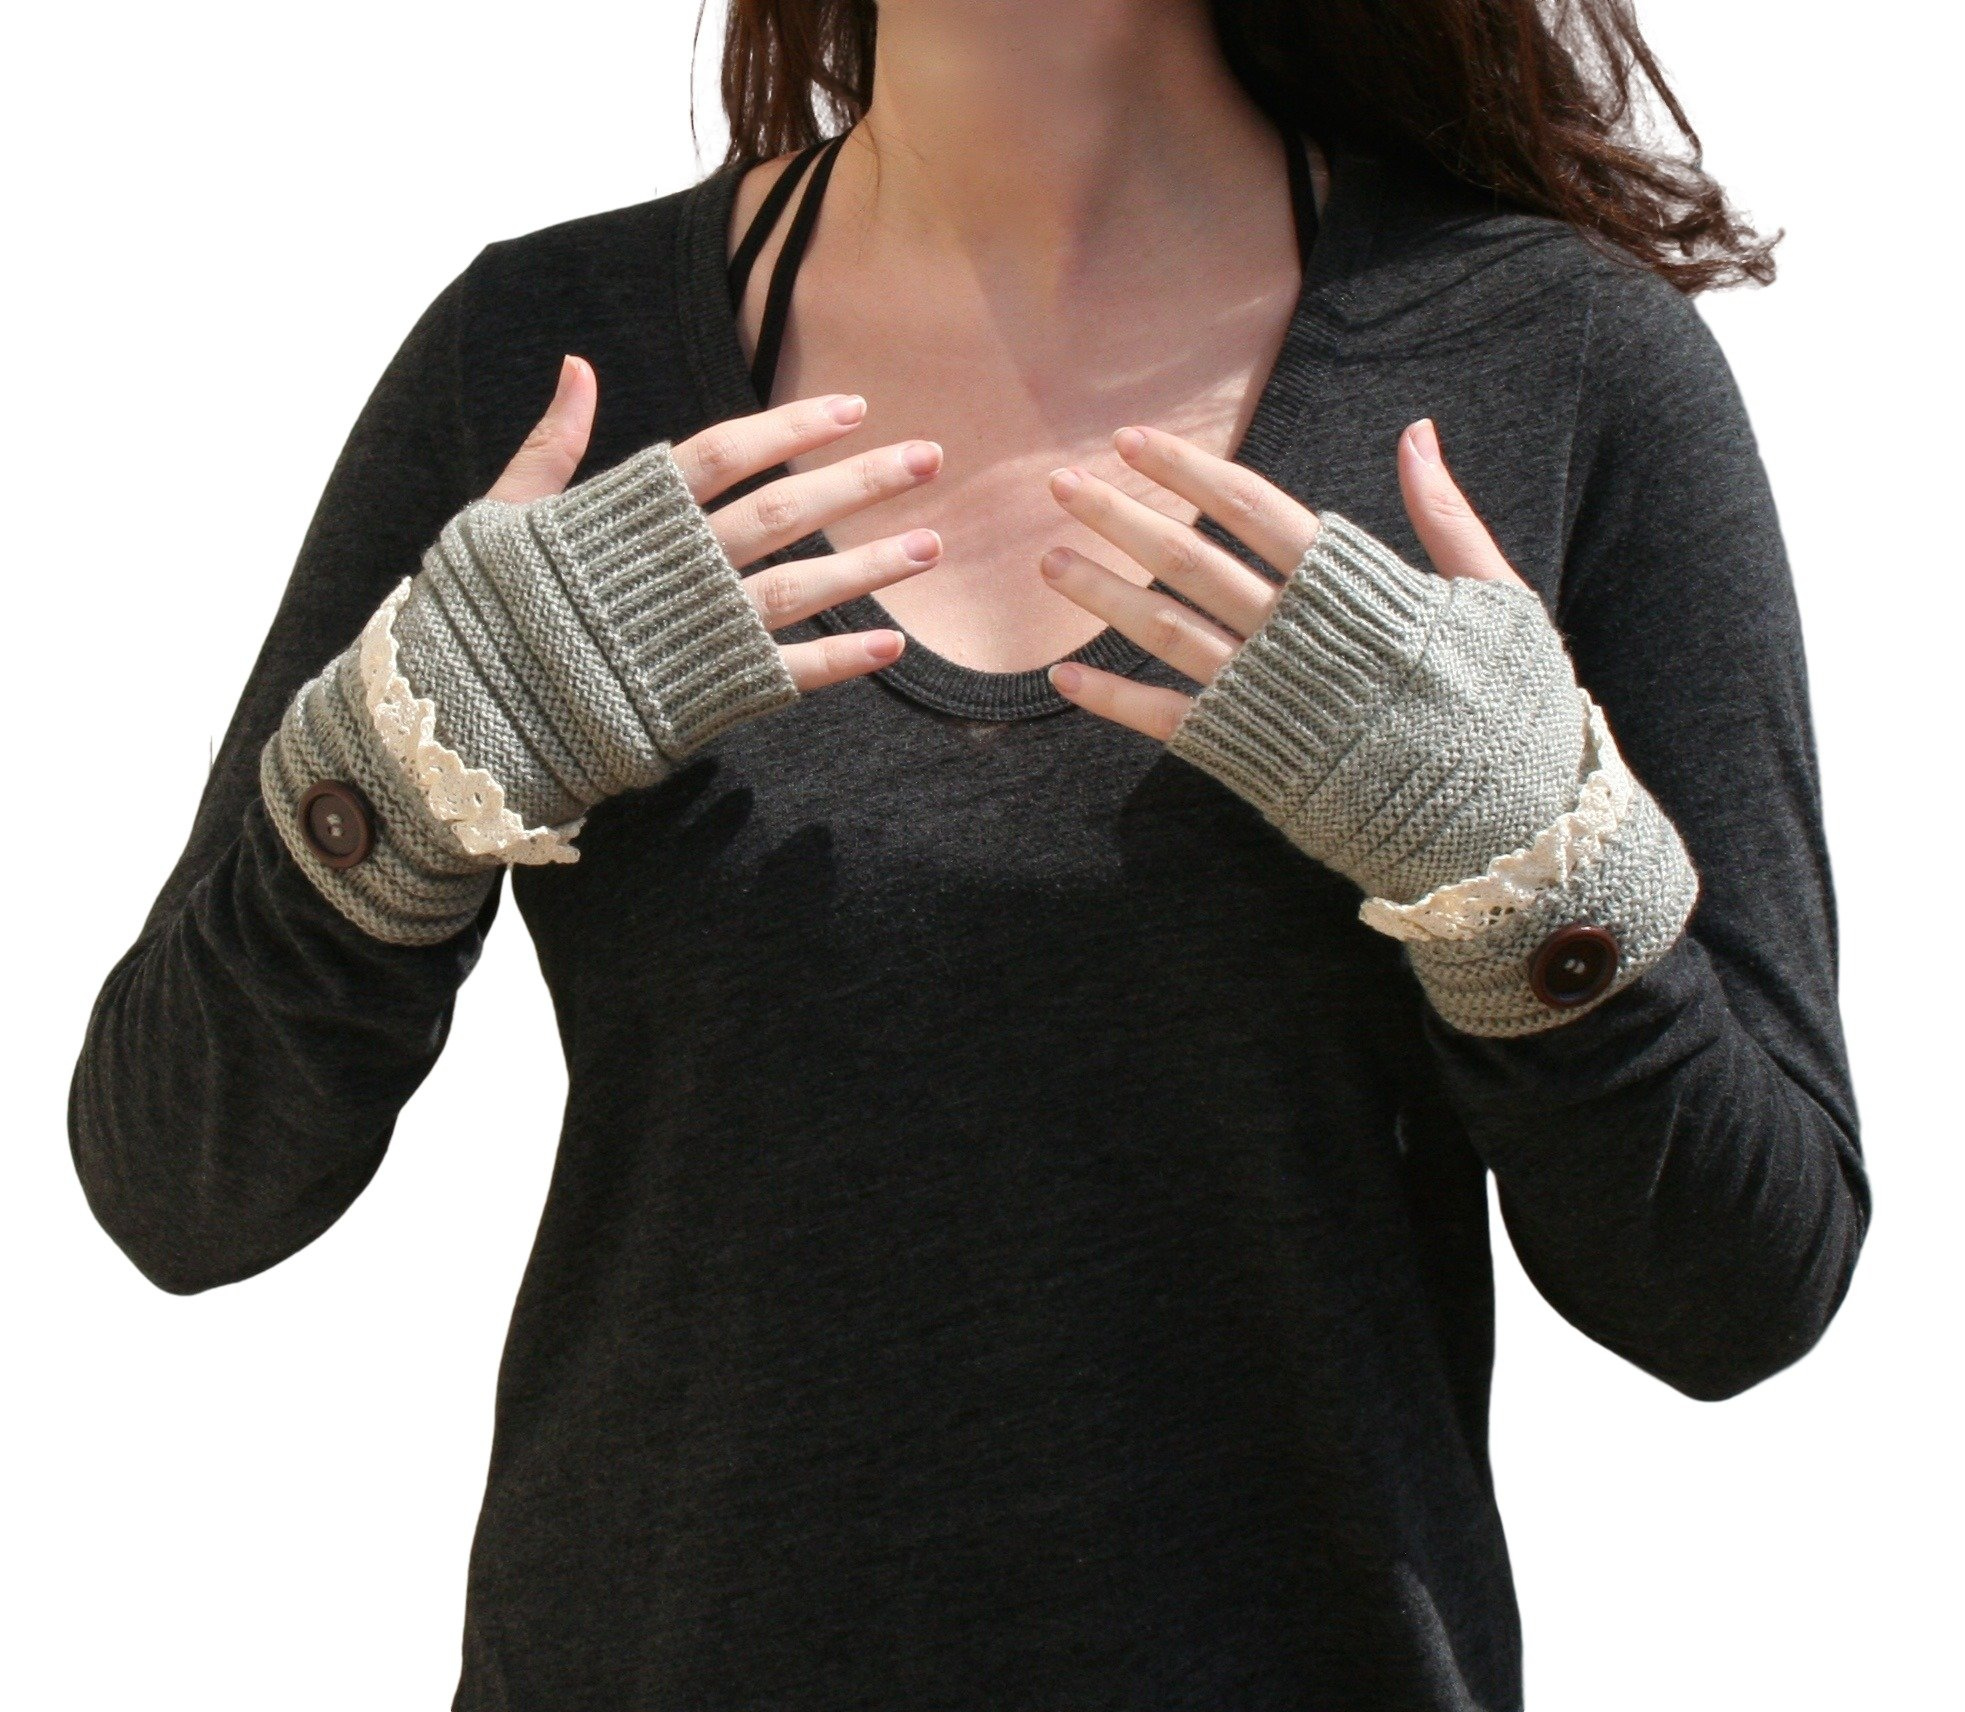 Blue 55 Cute Cozy Fingerless Thumbhole Knit Lace Hand Warmer Glove Mittens and boot cuffs Legwarmers Steel Grey One Size Item